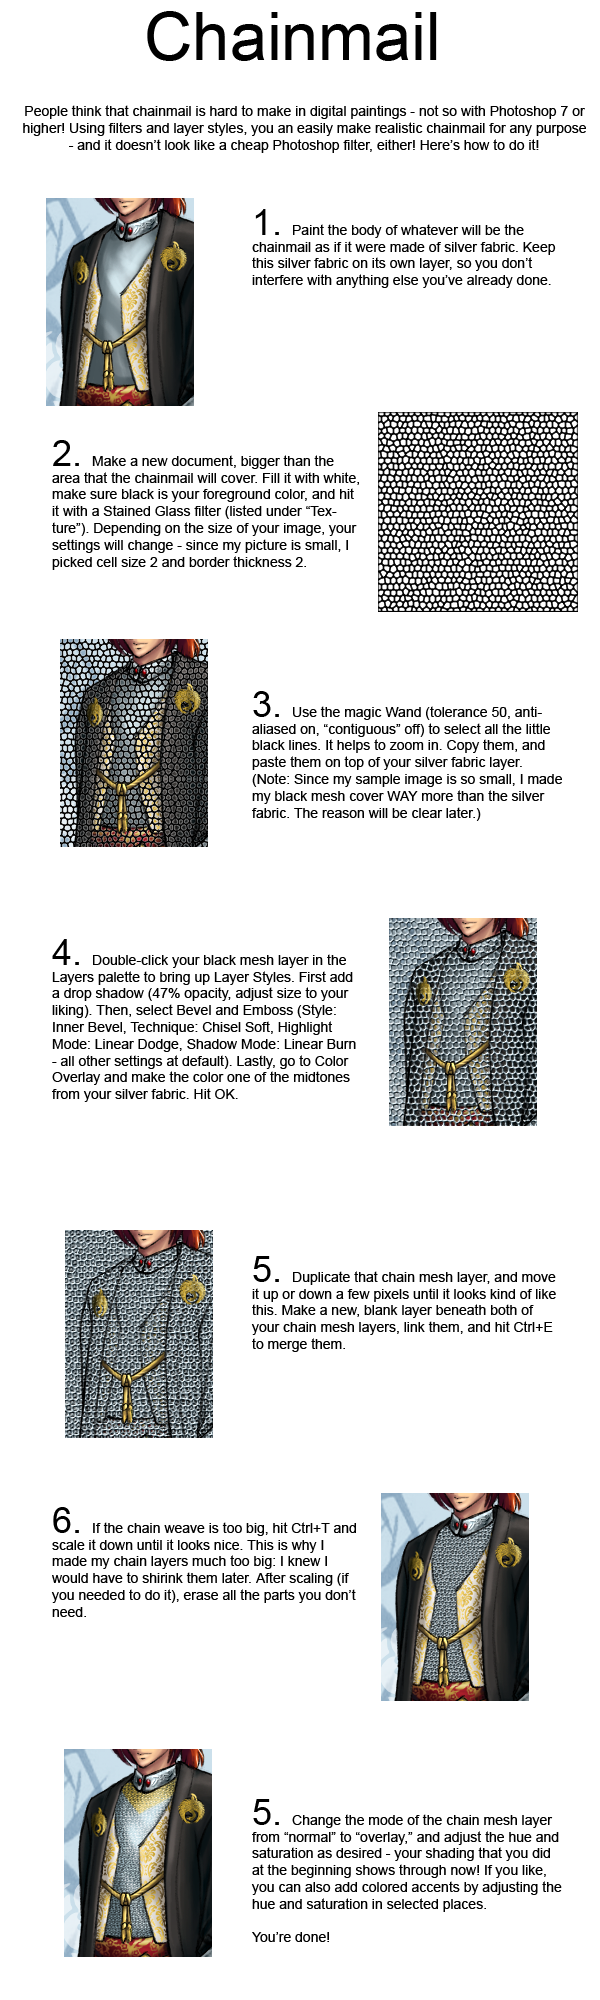 Chainmail in Photoshop by plangkye